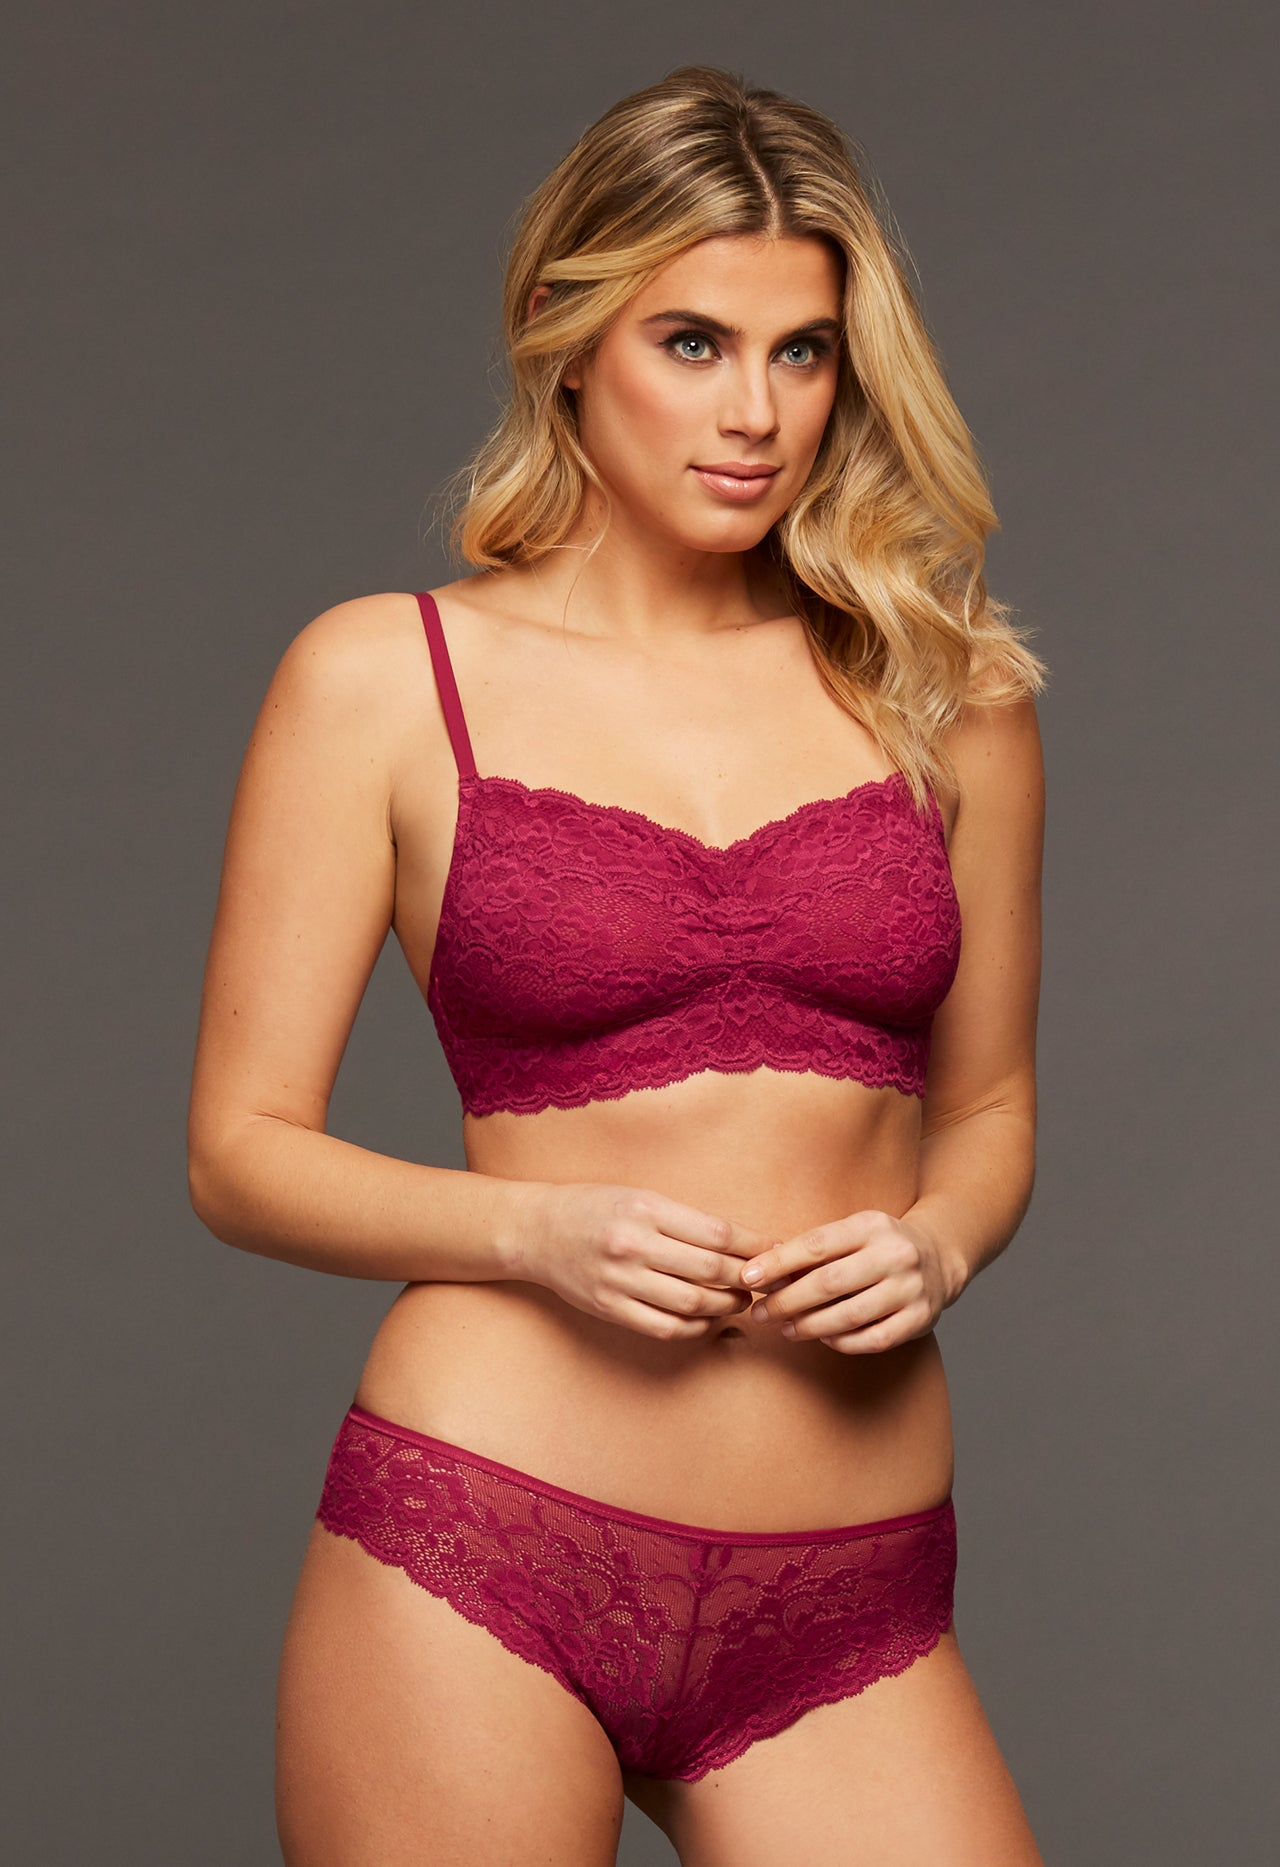 Women's lace red bralette for big bust.